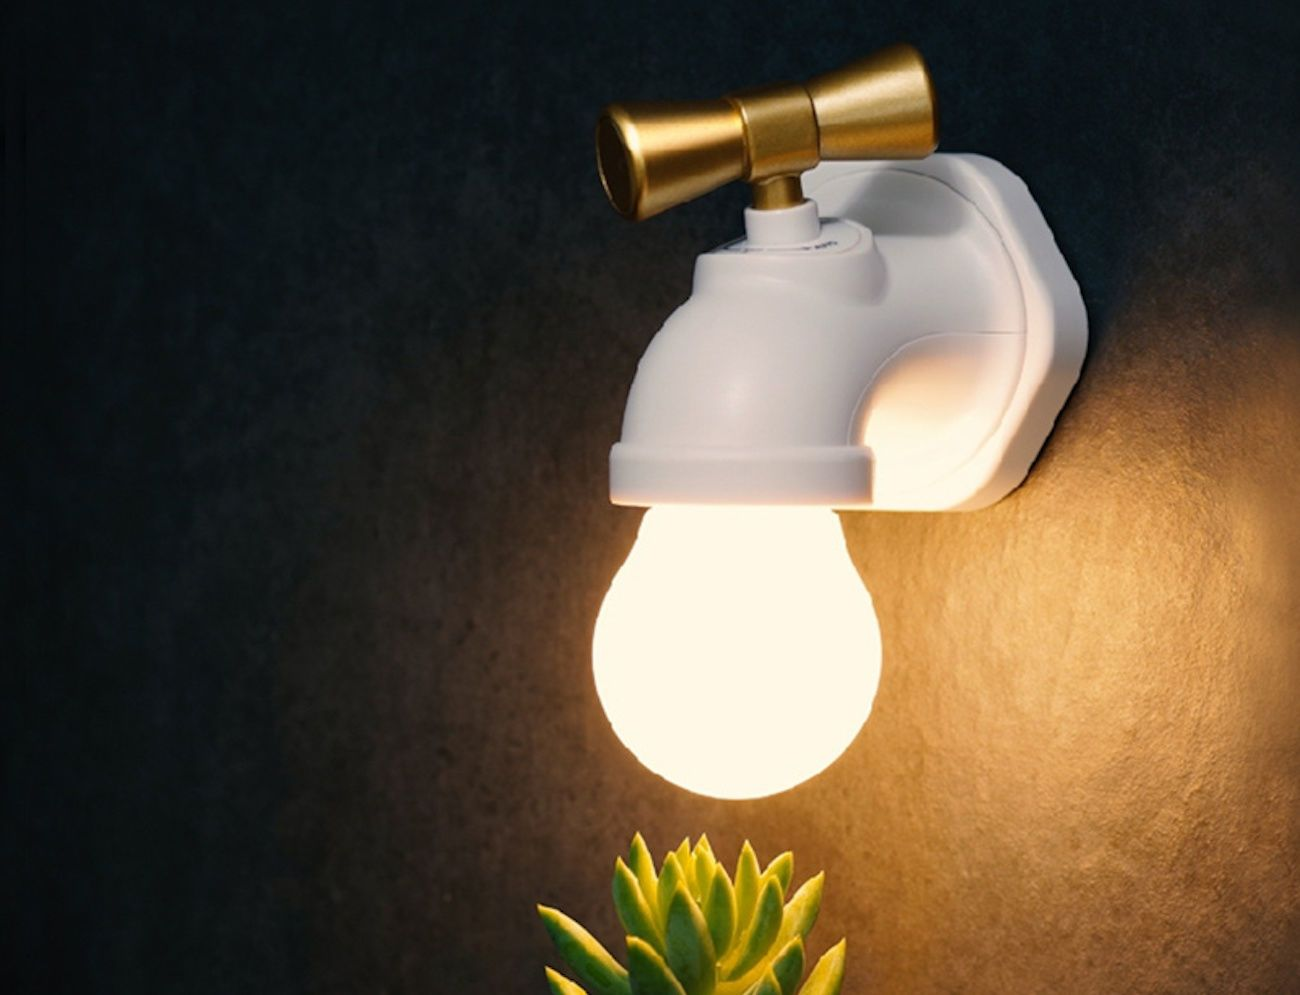 Faucet Shaped Led Night Lamp 187 Gadget Flow